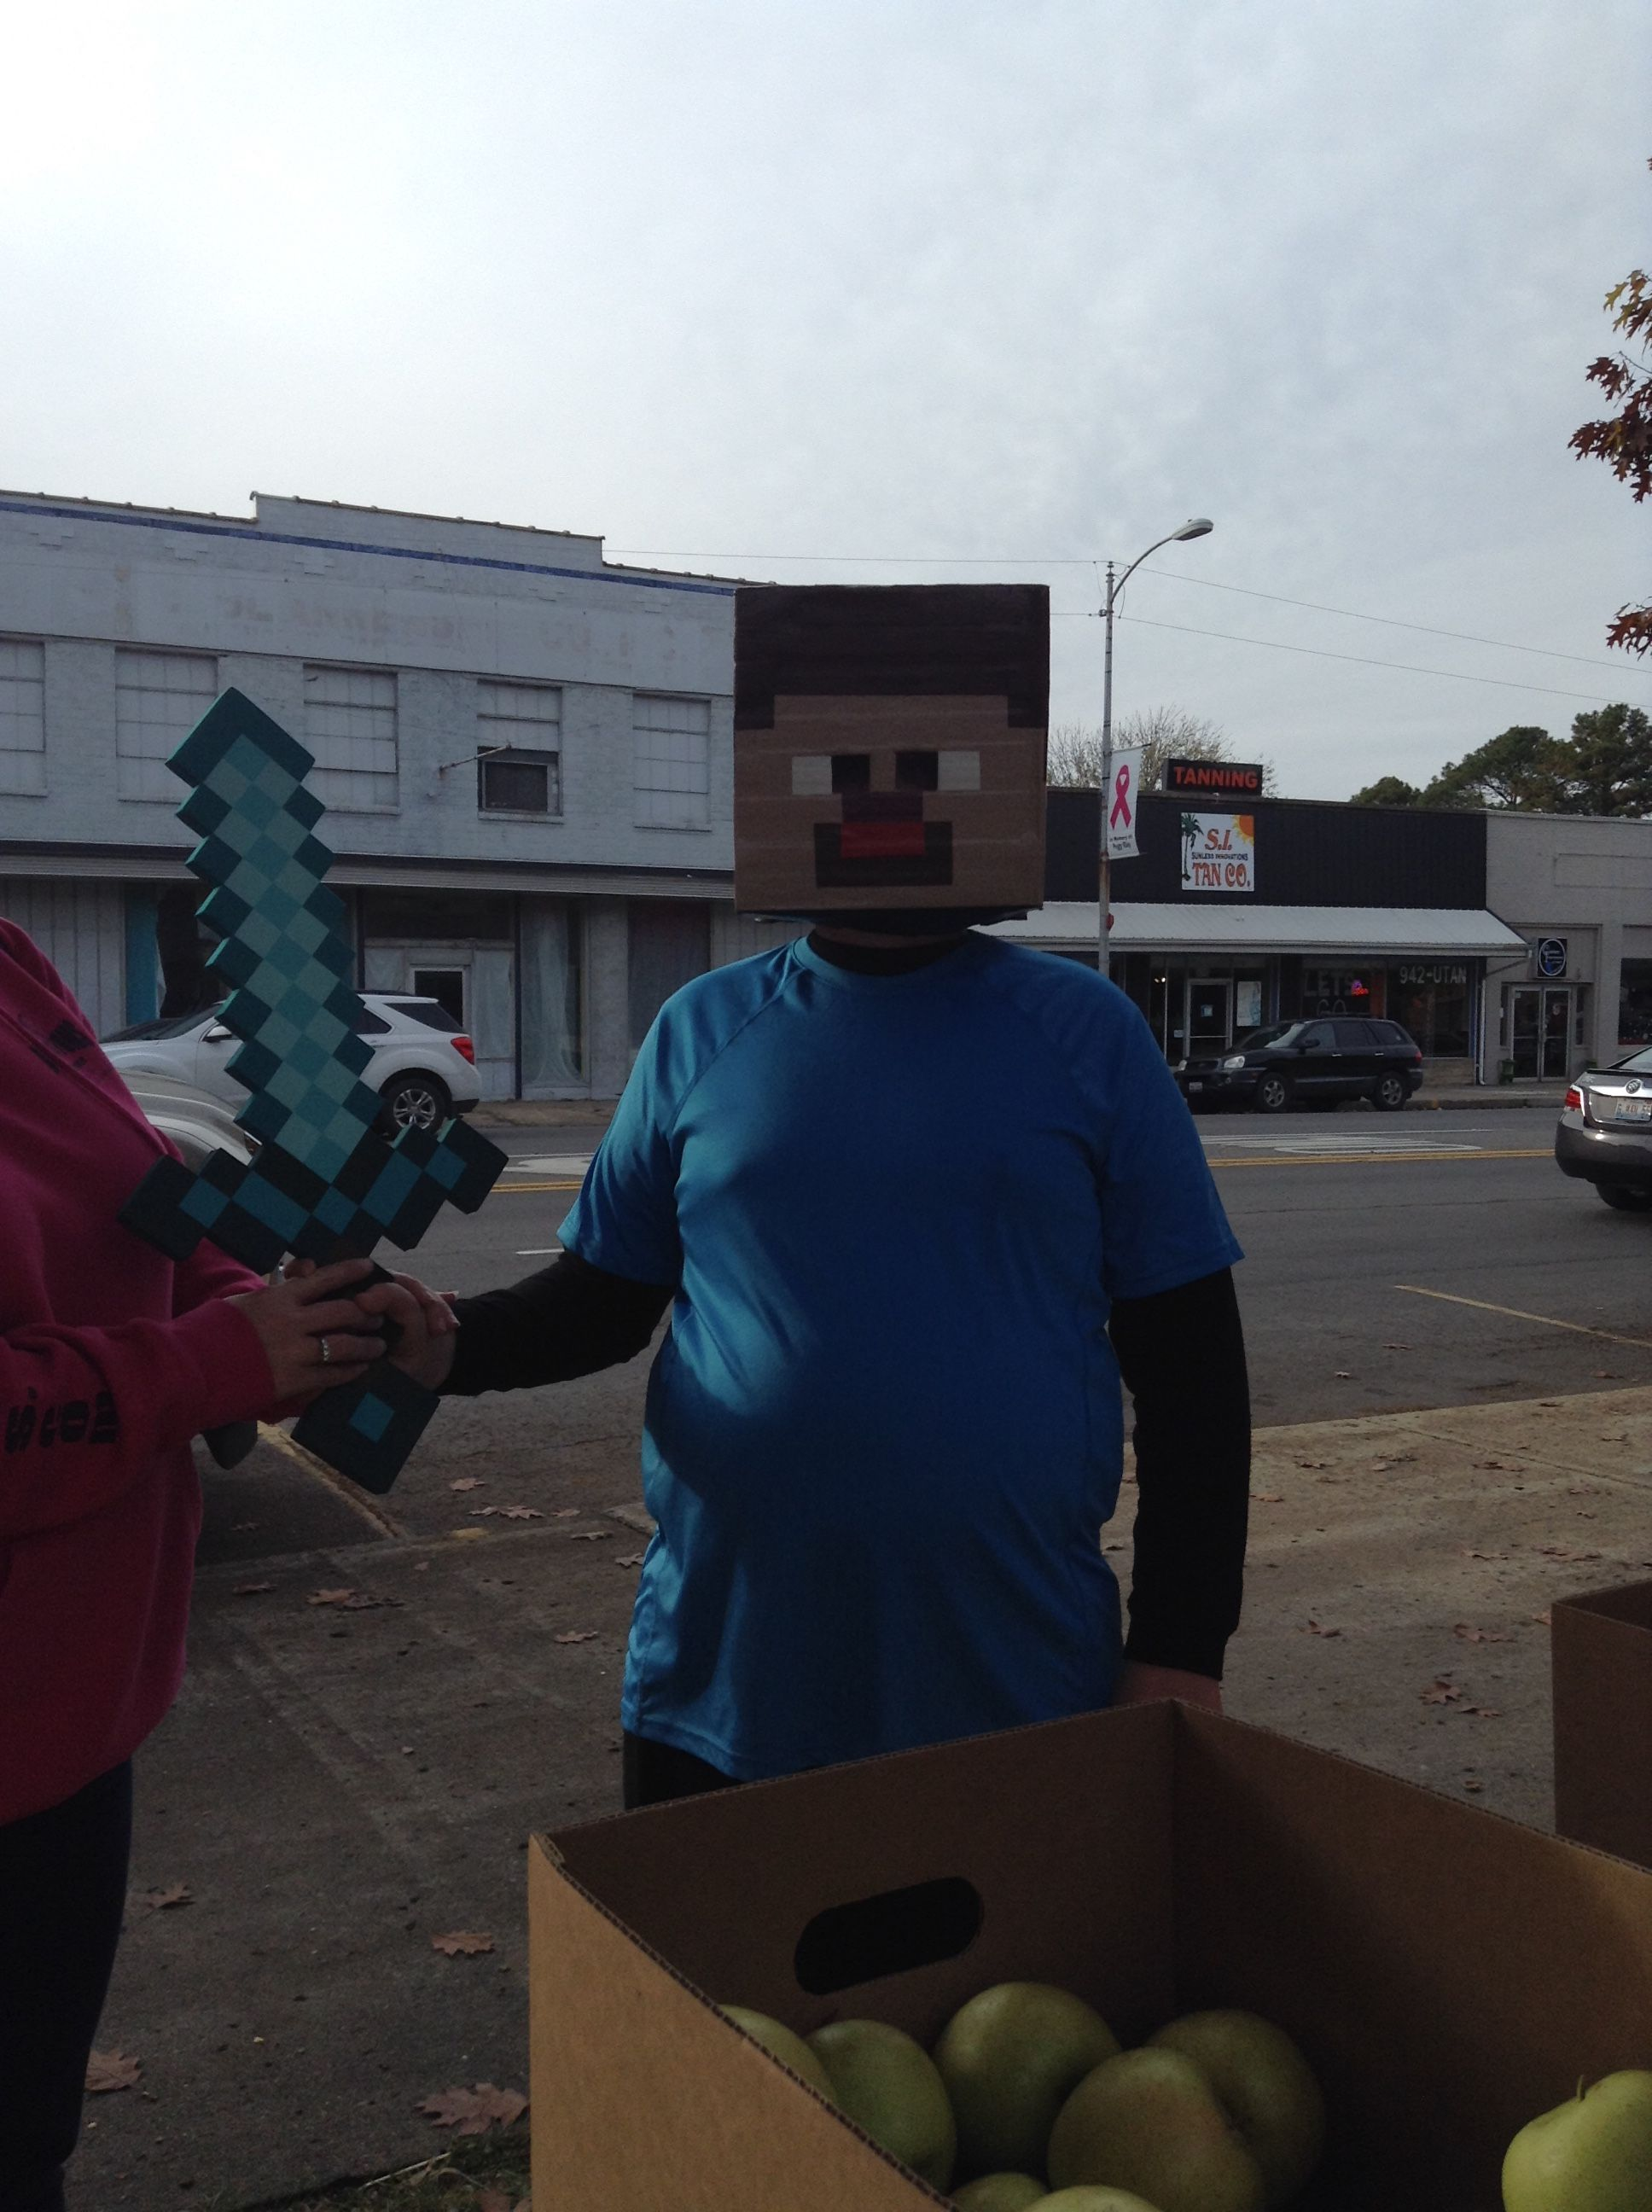 We had a visit from Minecraft's Steve! We didn't want to